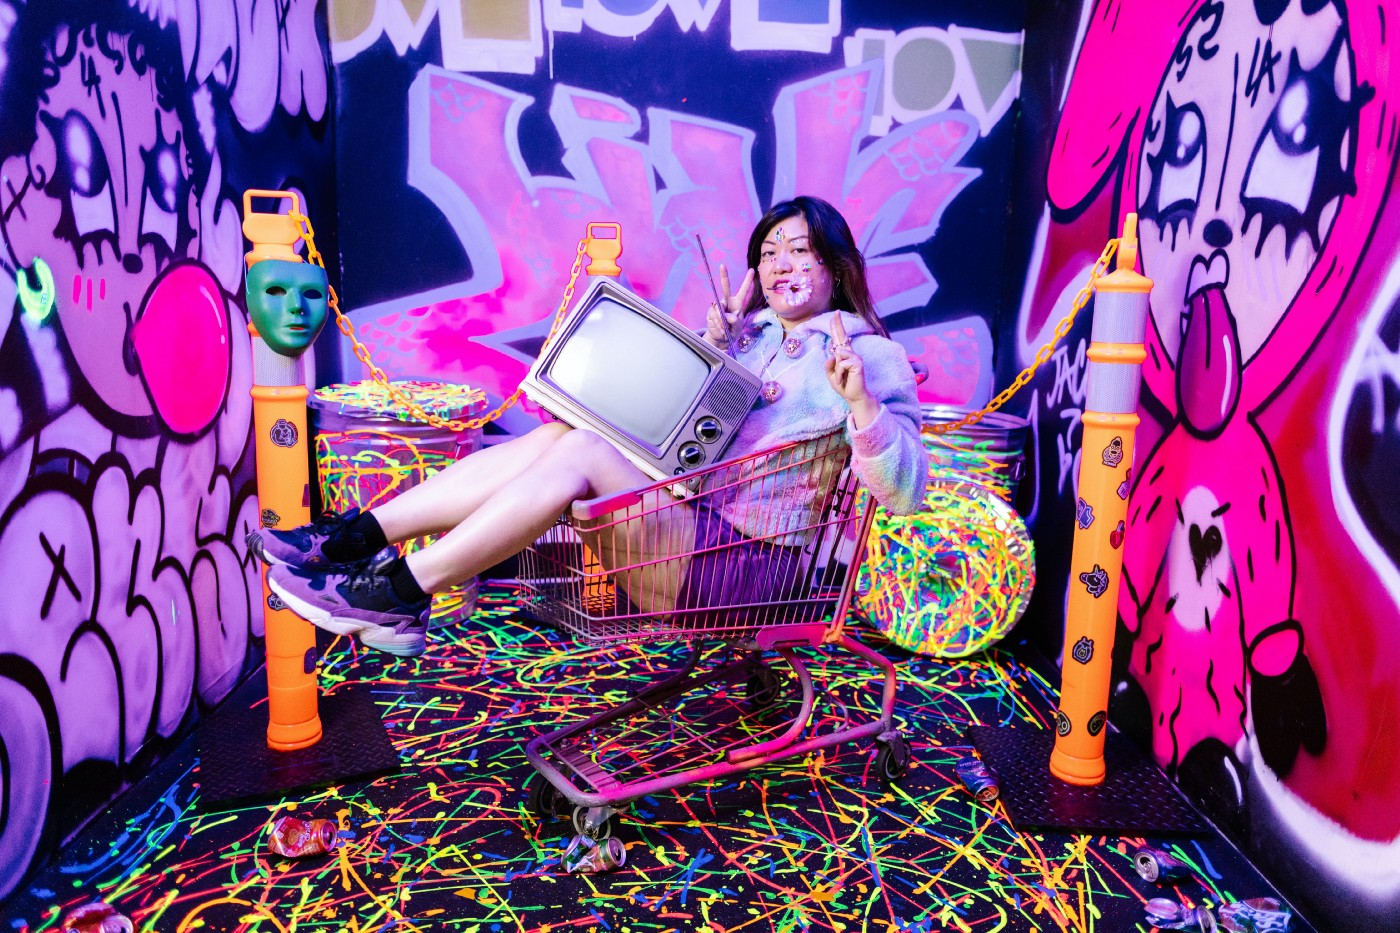 Fun and chaotic messy photograph of woman in shopping cart with an old television in her lap. Graffiti, green mask, colorful floor. General tomfoolery.